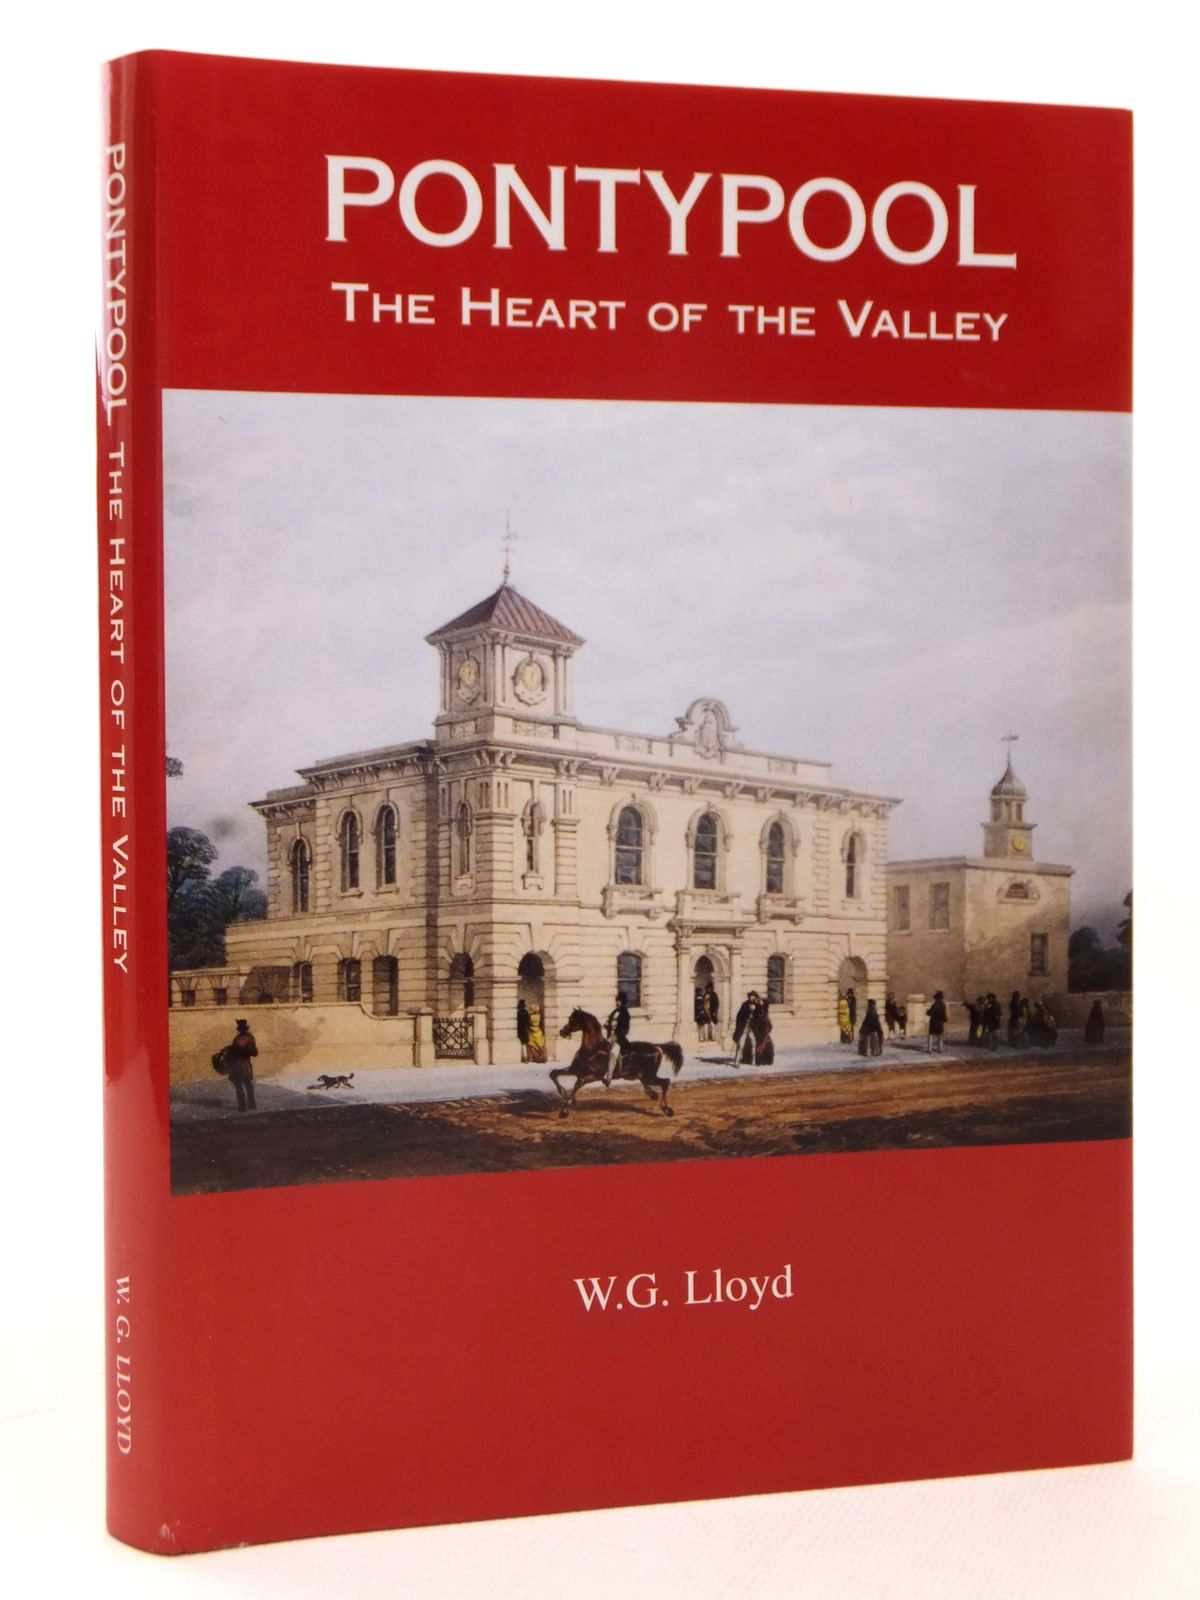 Photo of PONTYPOOL THE HEART OF THE VALLEY written by Lloyd, W.G. published by W.G. Lloyd (STOCK CODE: 1609267)  for sale by Stella & Rose's Books